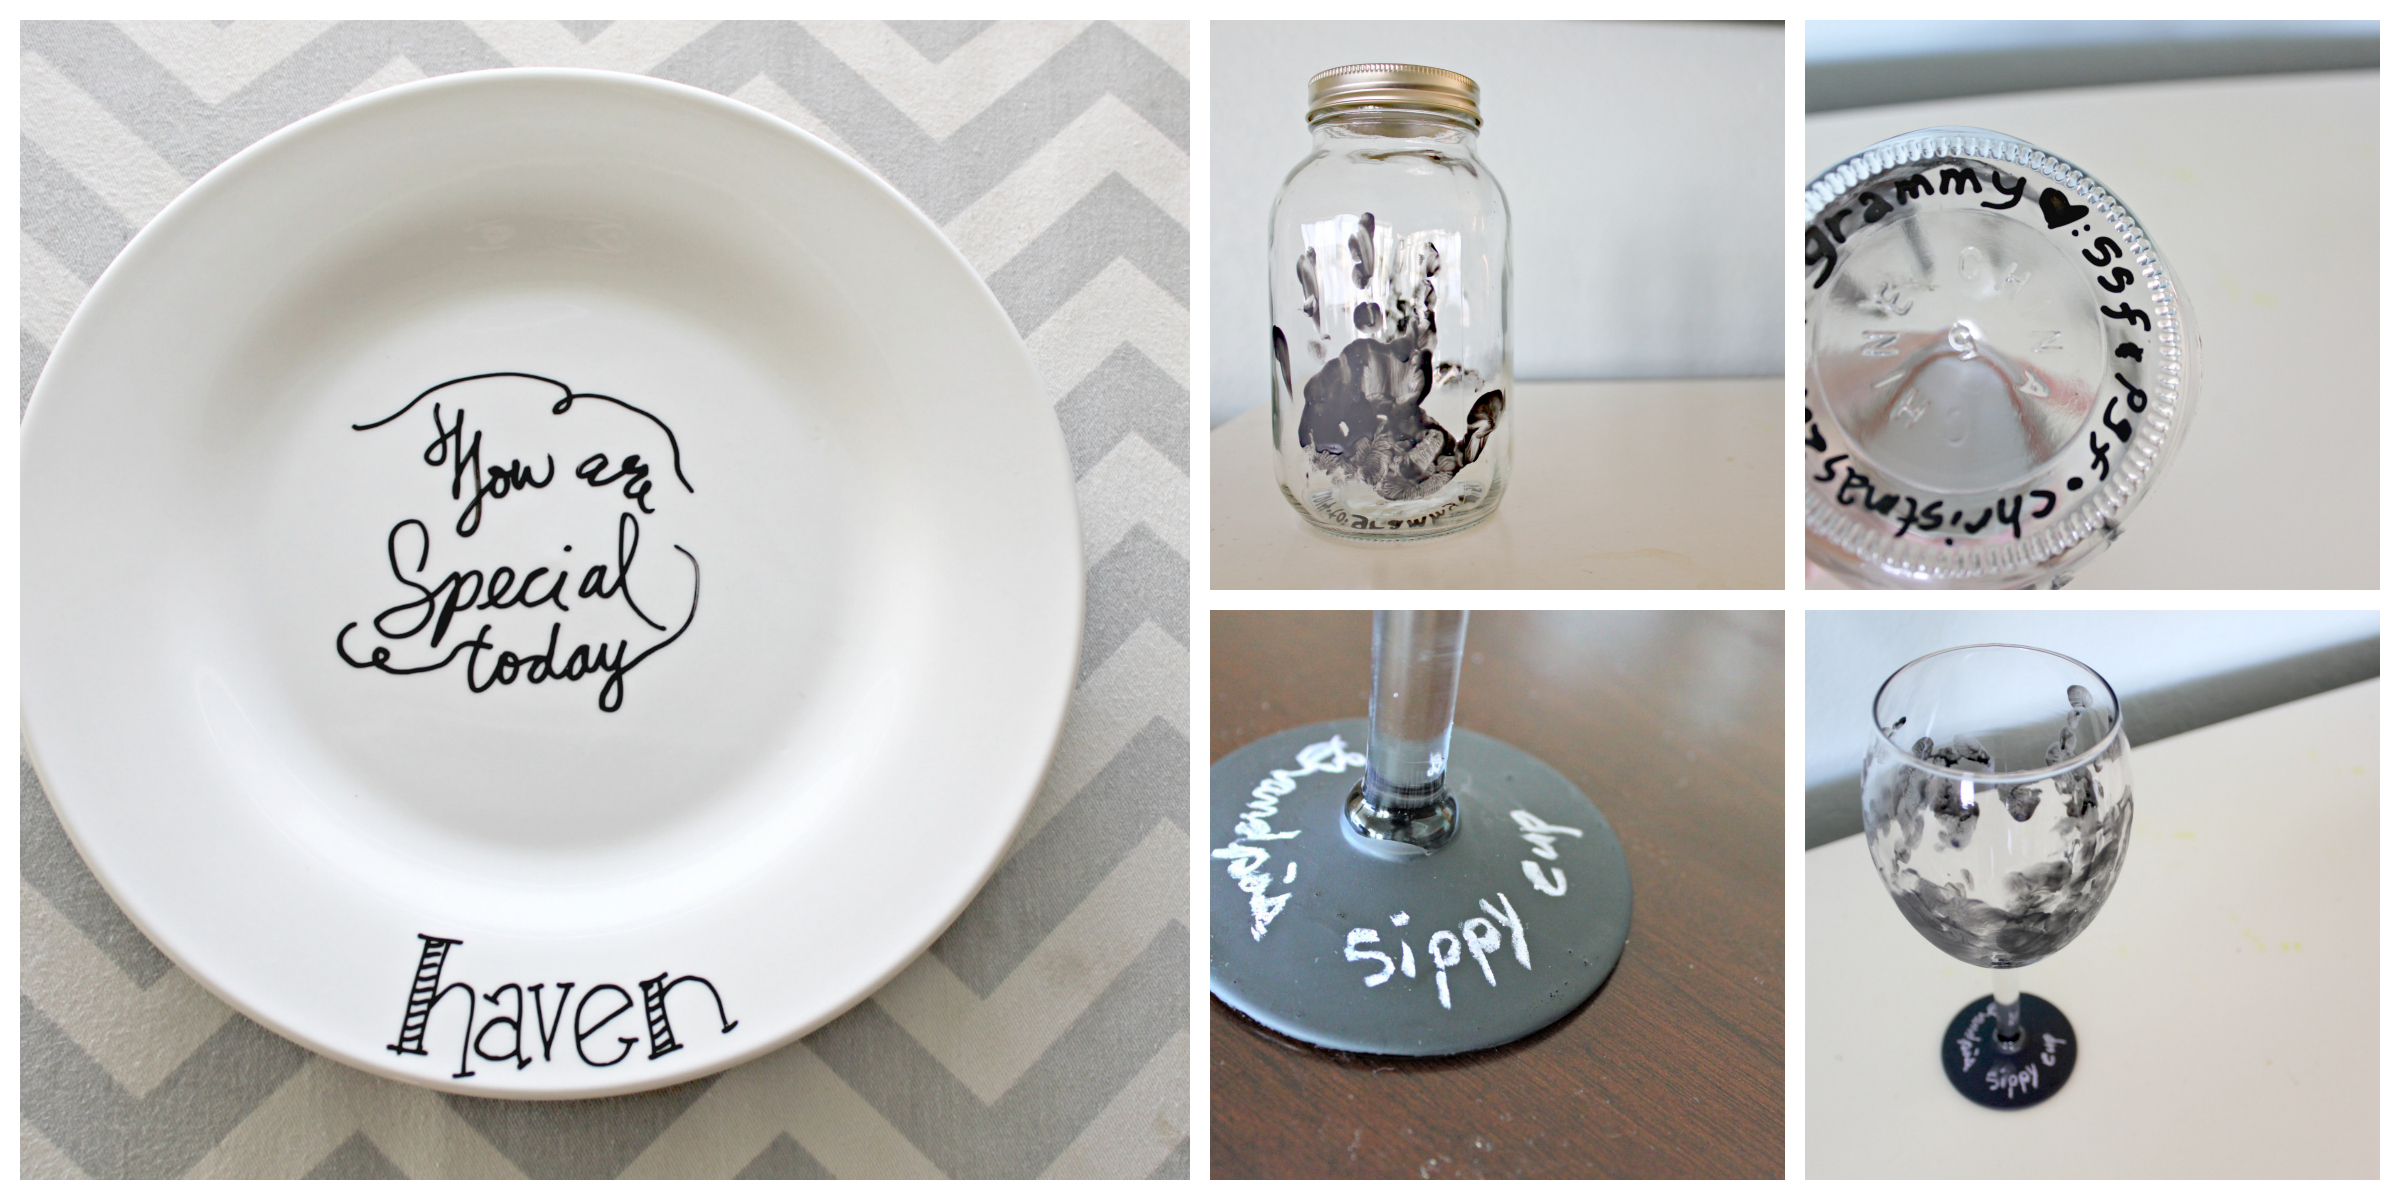 8 Expensive-Looking DIY Gifts (All Under $8) SheJustGlows.com